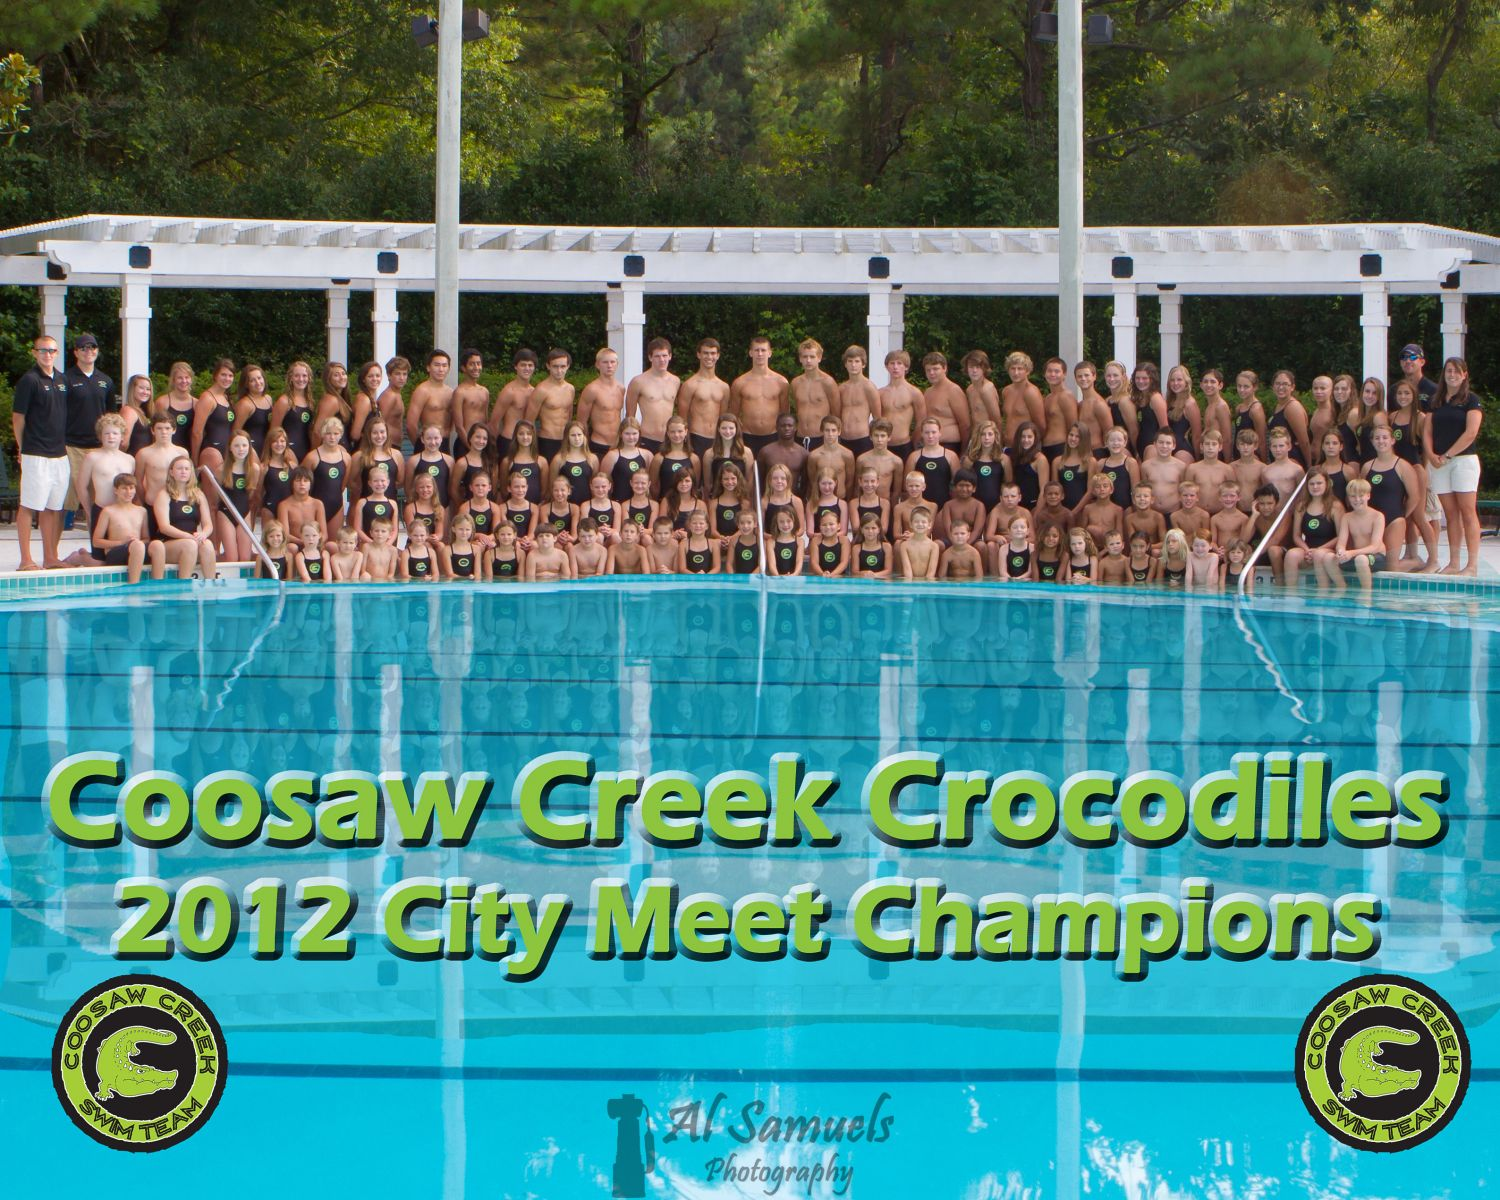 The Coosaw Creek Crocodiles Swim Team